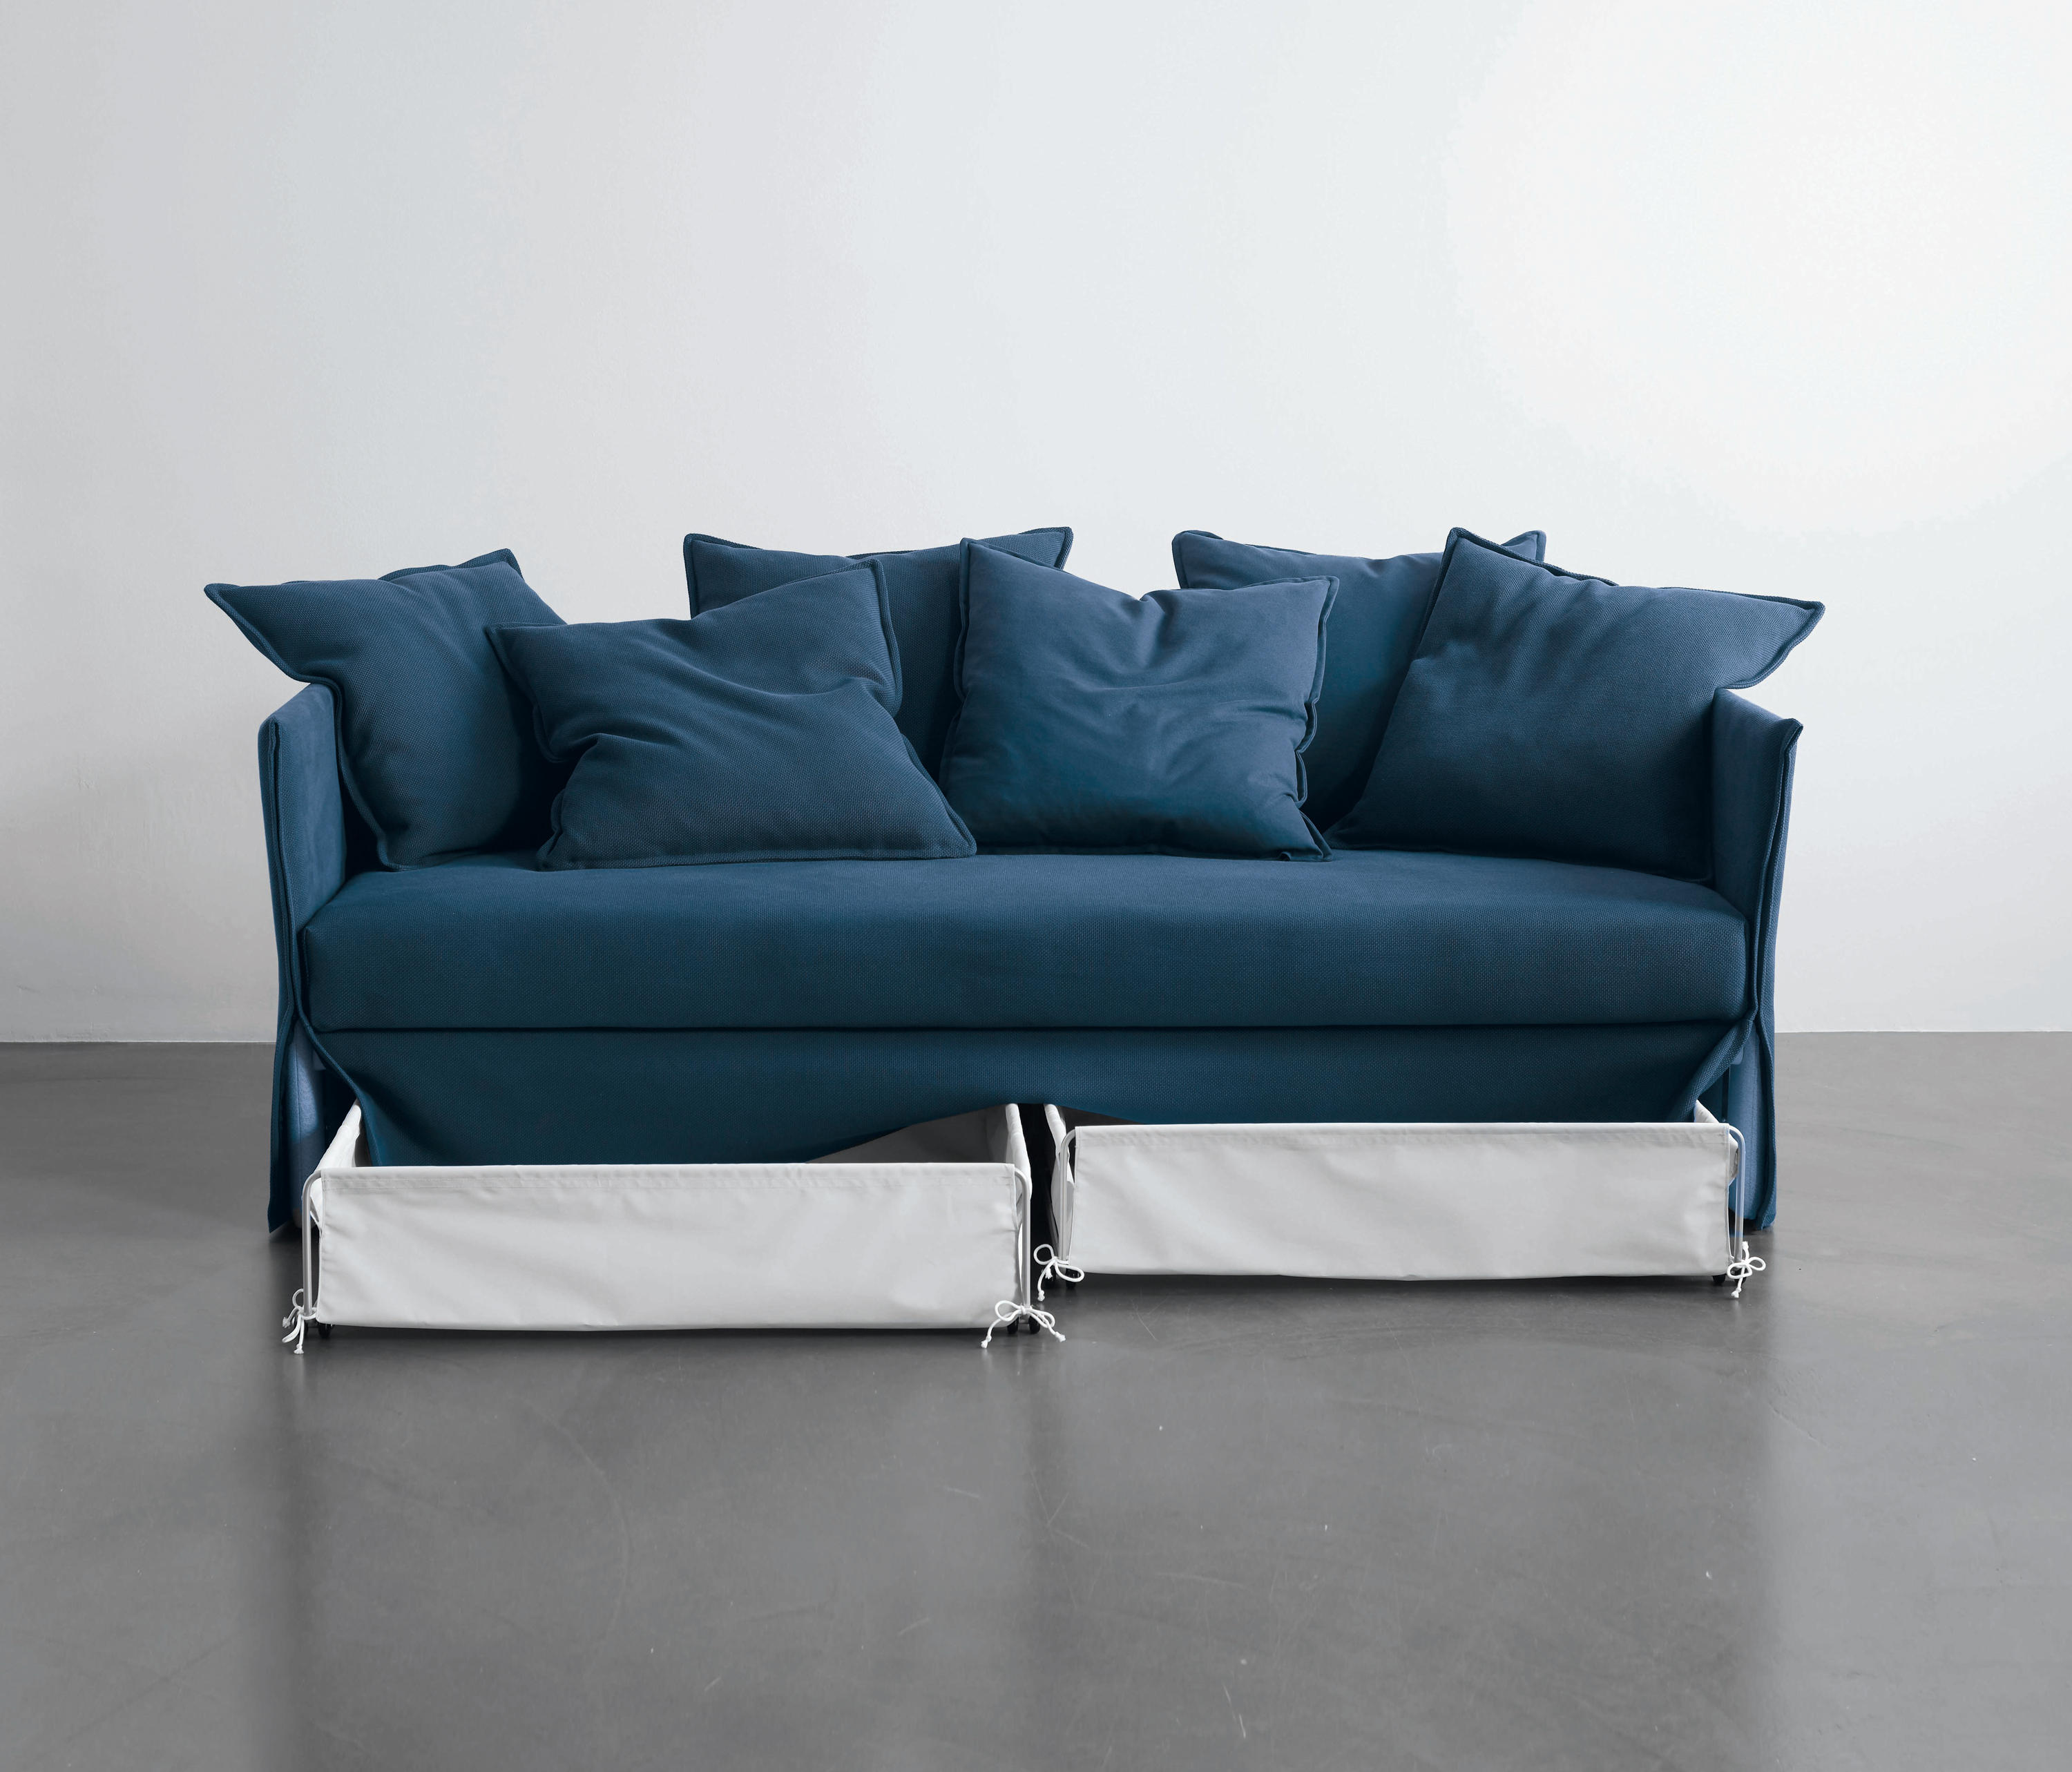 Sofa O Sillon Fox Schlafsofa Sofas Von Meridiani Architonic